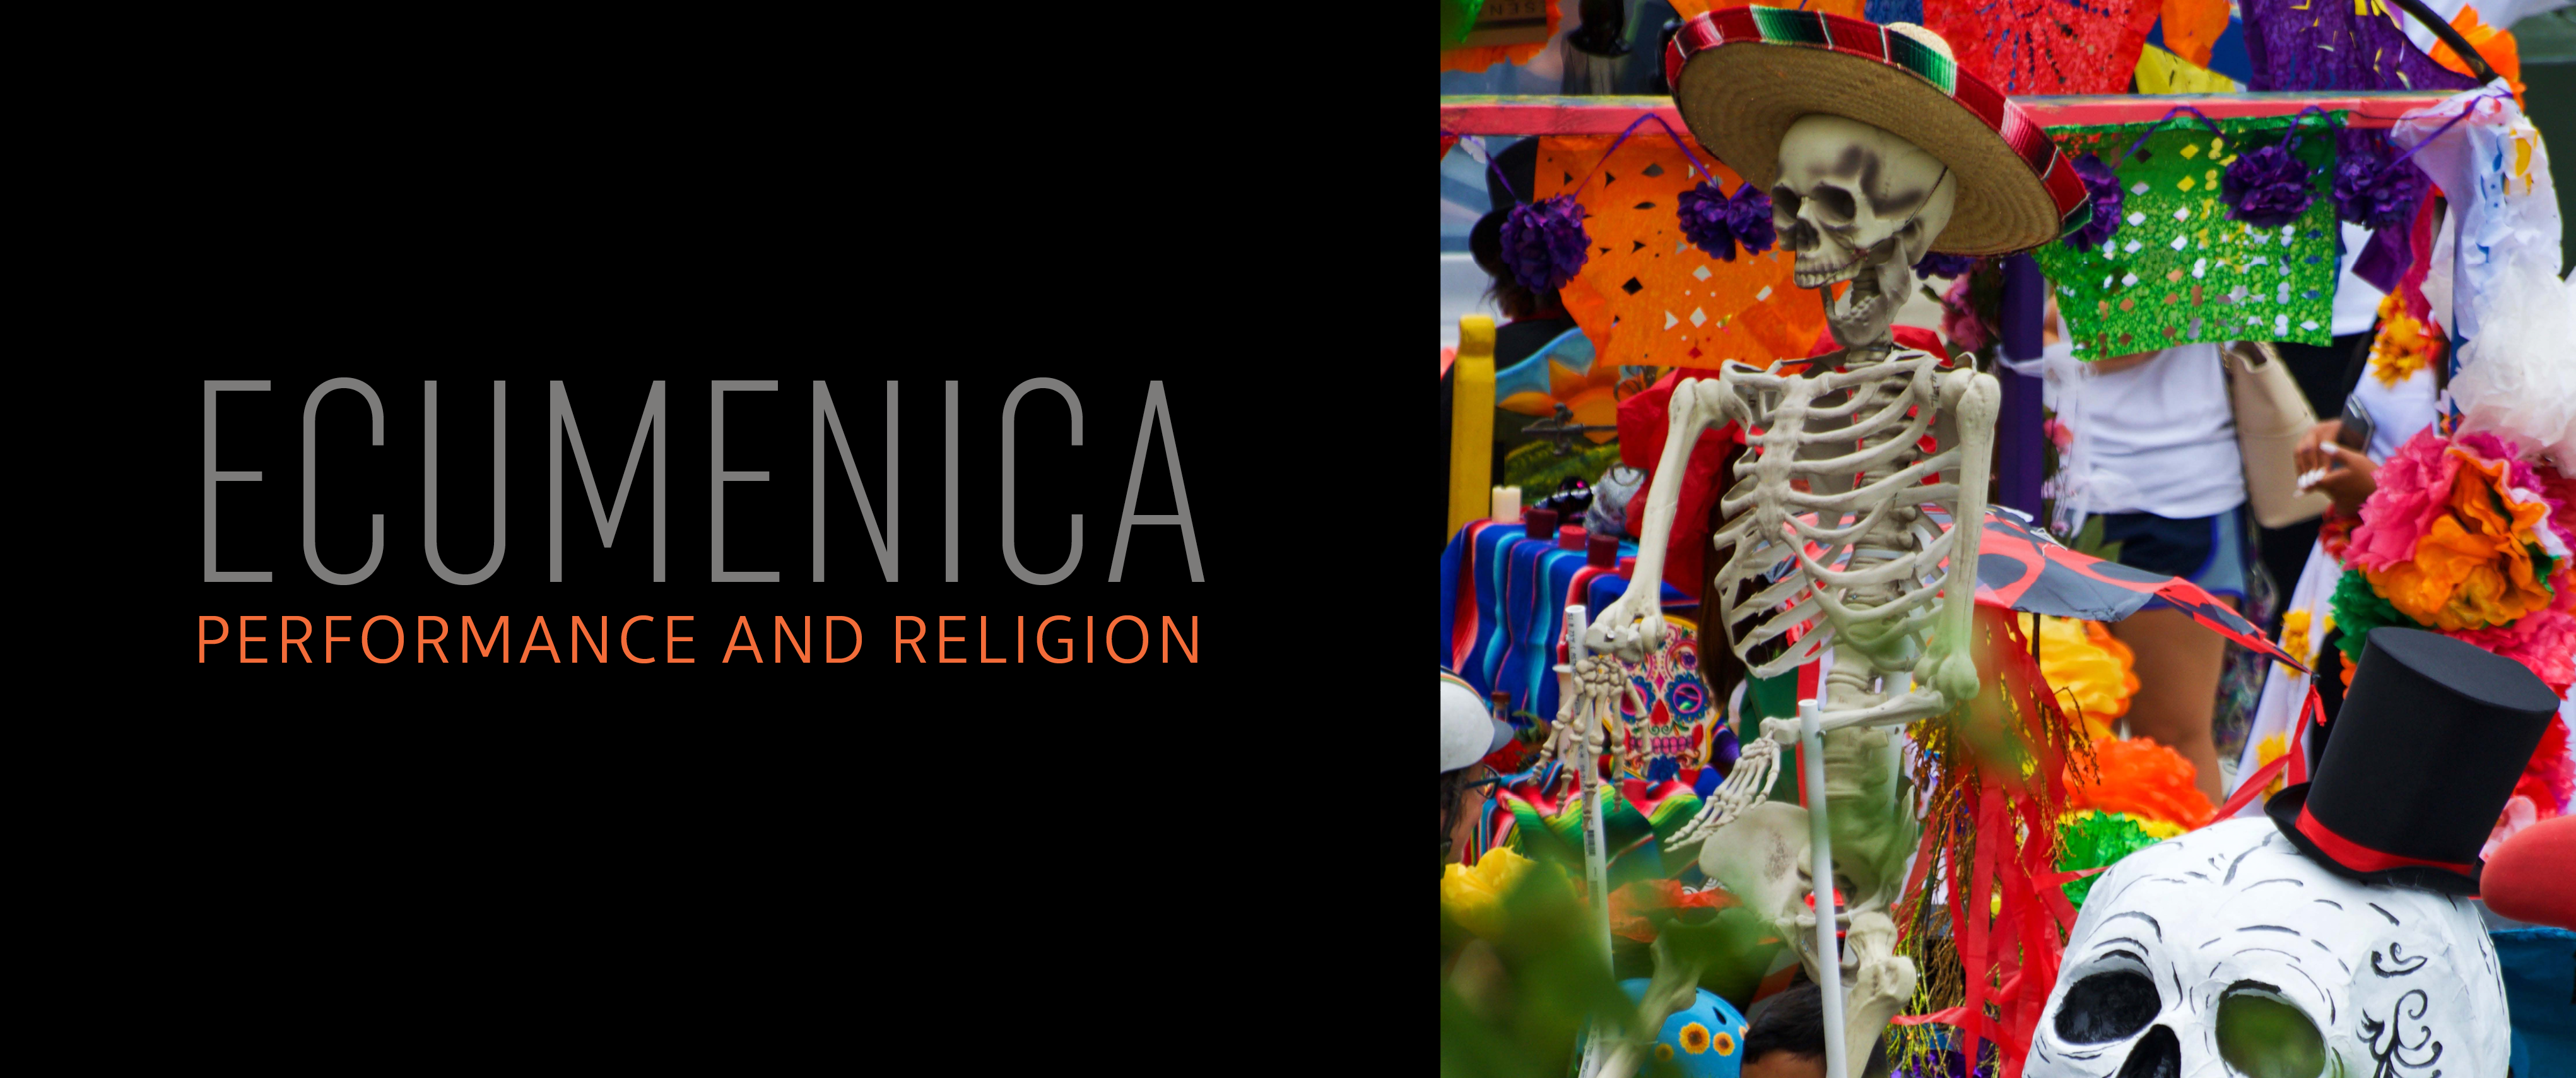 Ecumenica: Performance and Religion